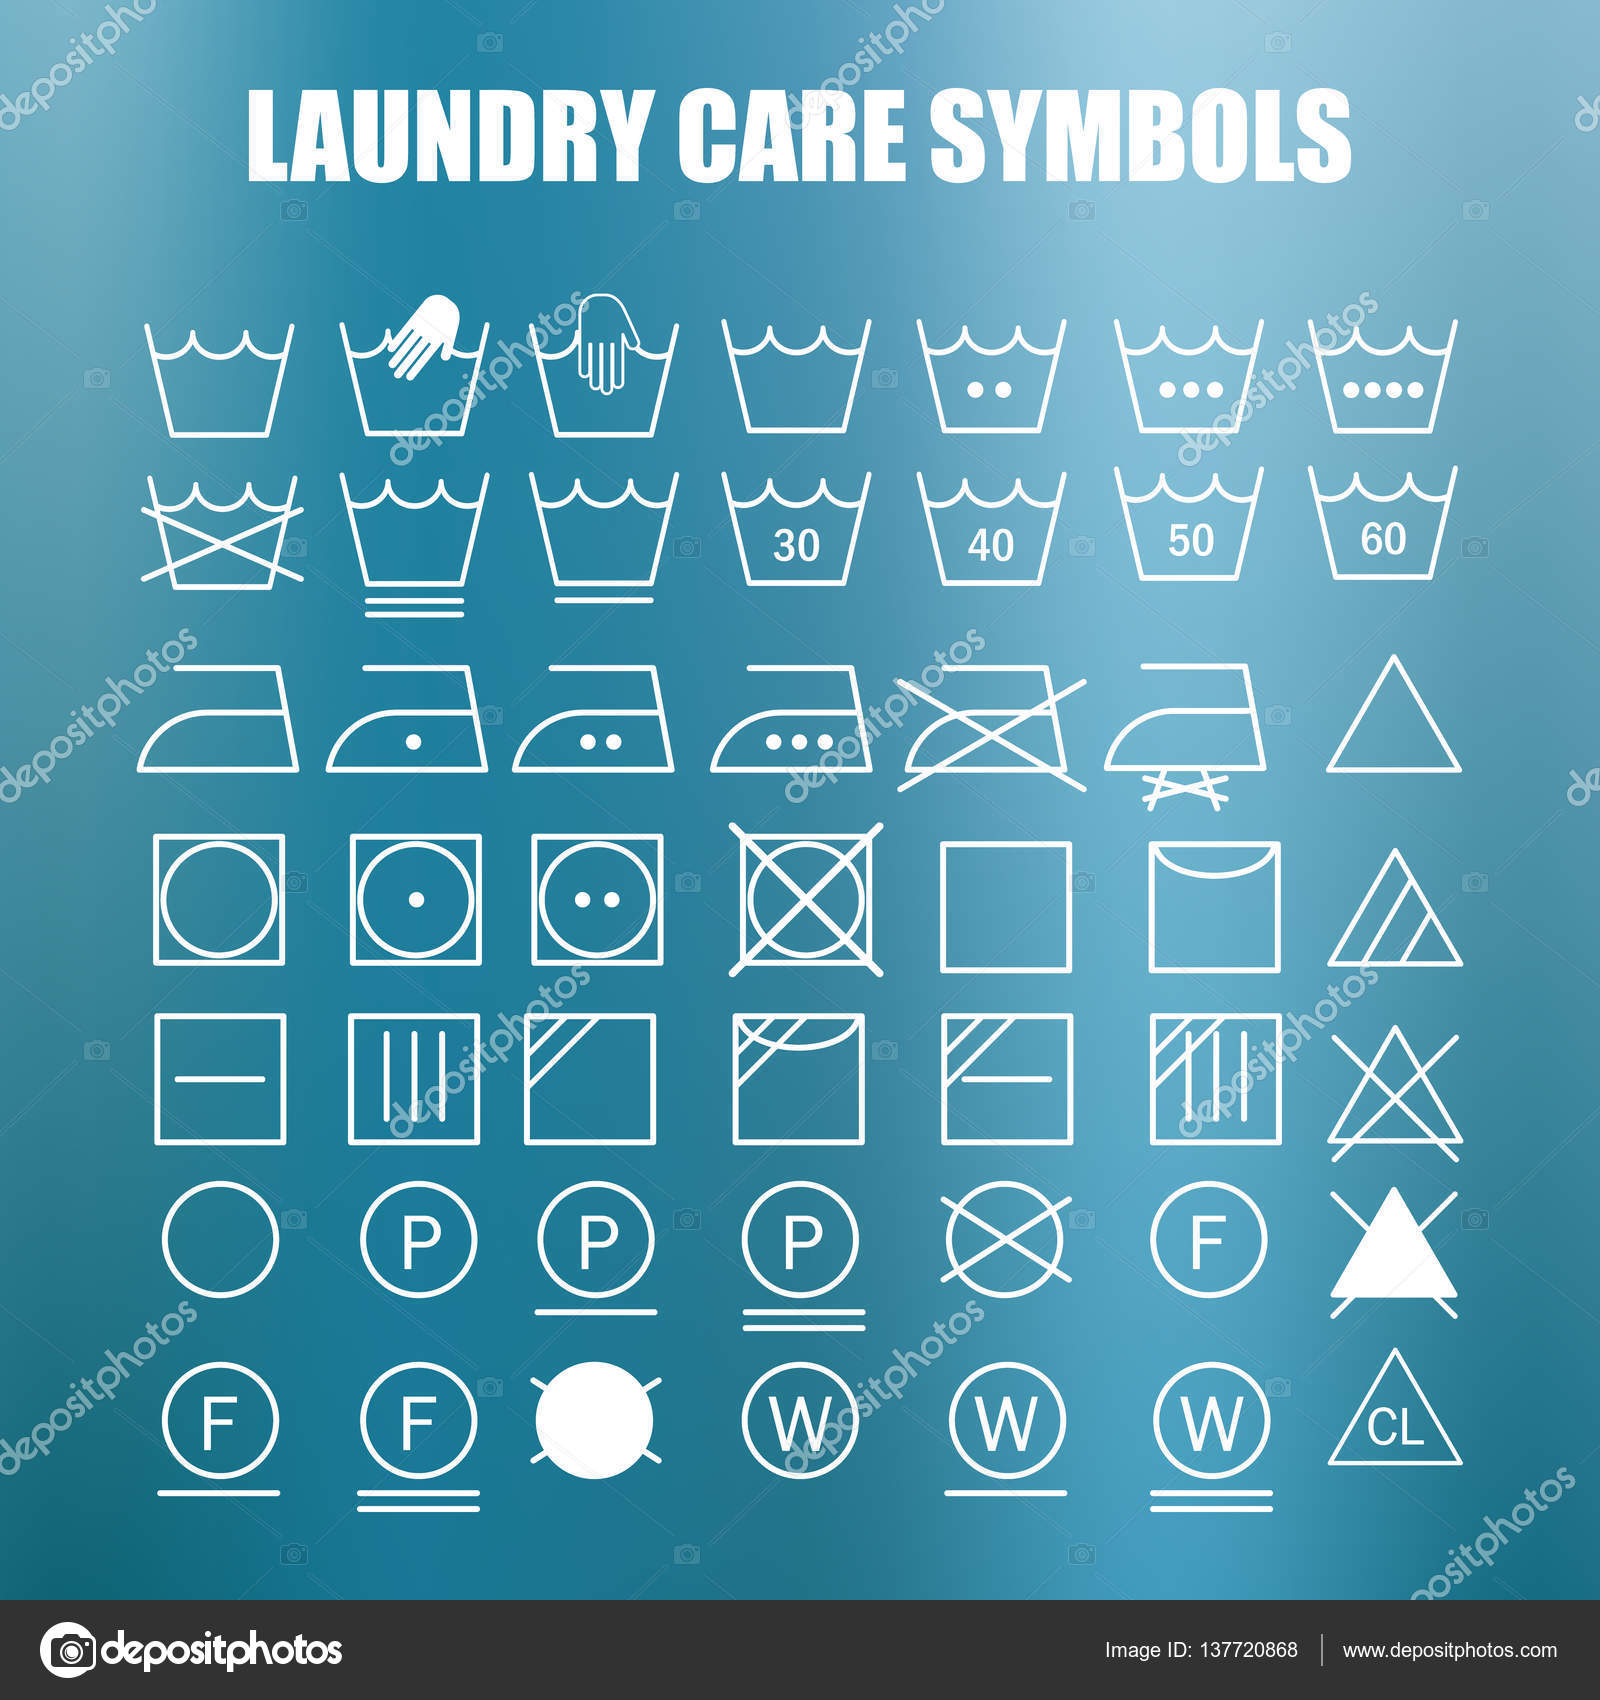 Laundry care symbols set stock vector soloviika 137720868 laundry care symbols set stock vector biocorpaavc Image collections